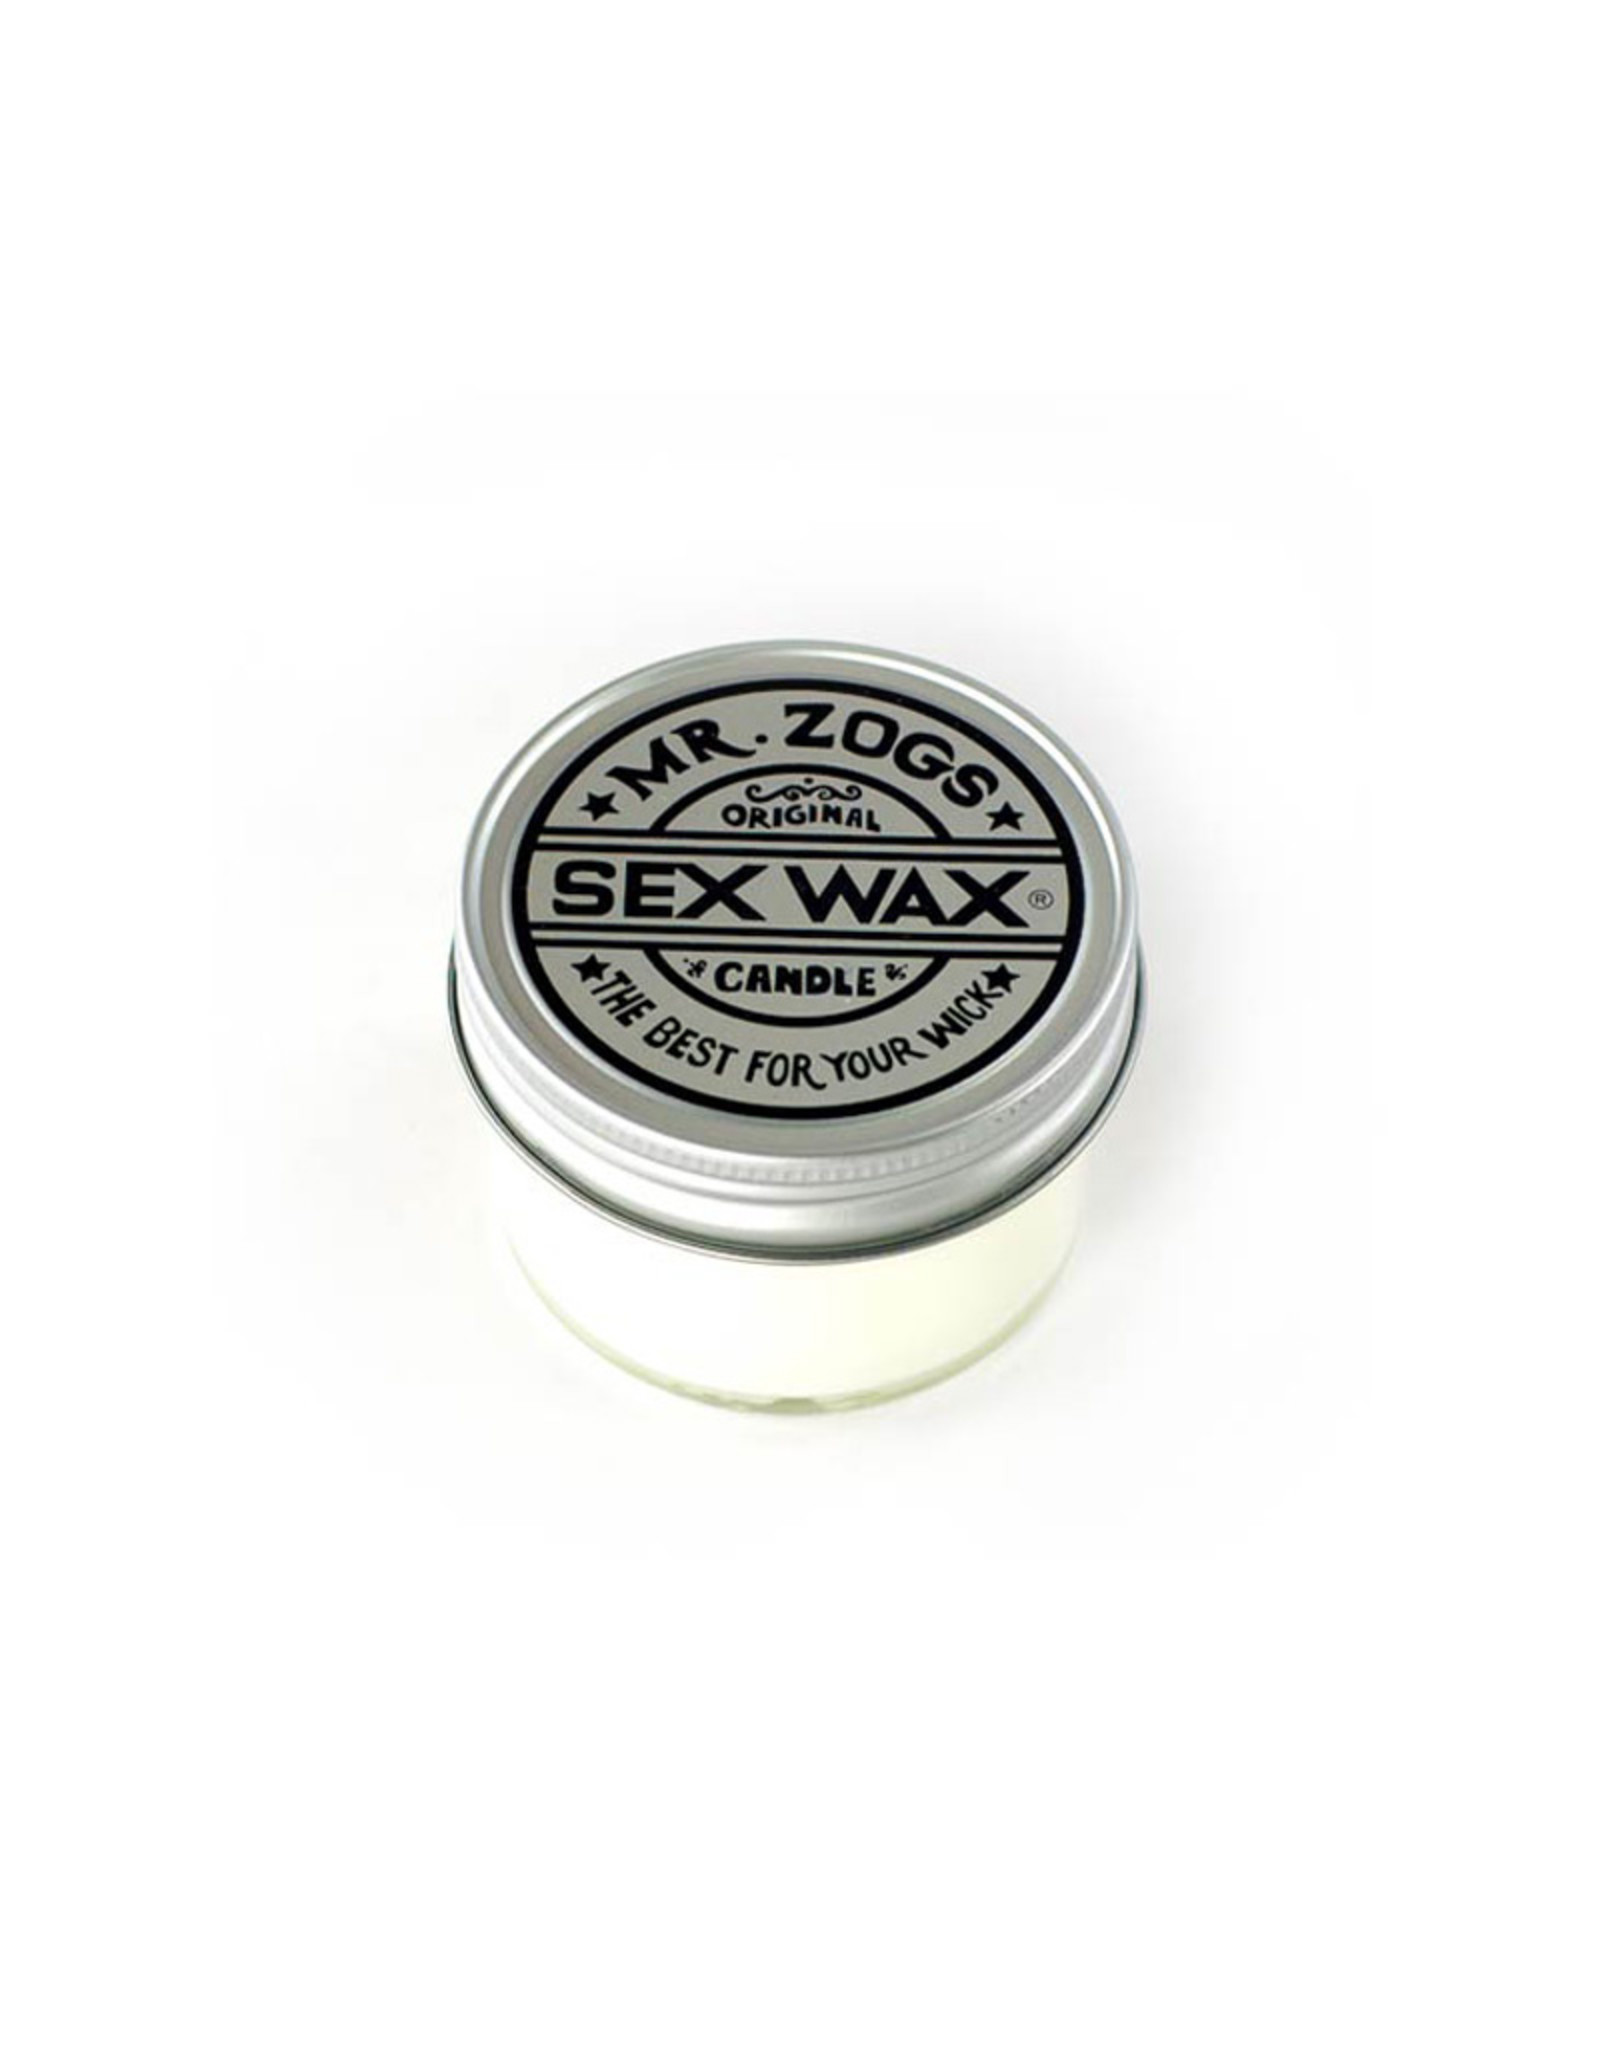 Sex Wax Sex Wax Candle 4 Oz. Glass Coconut